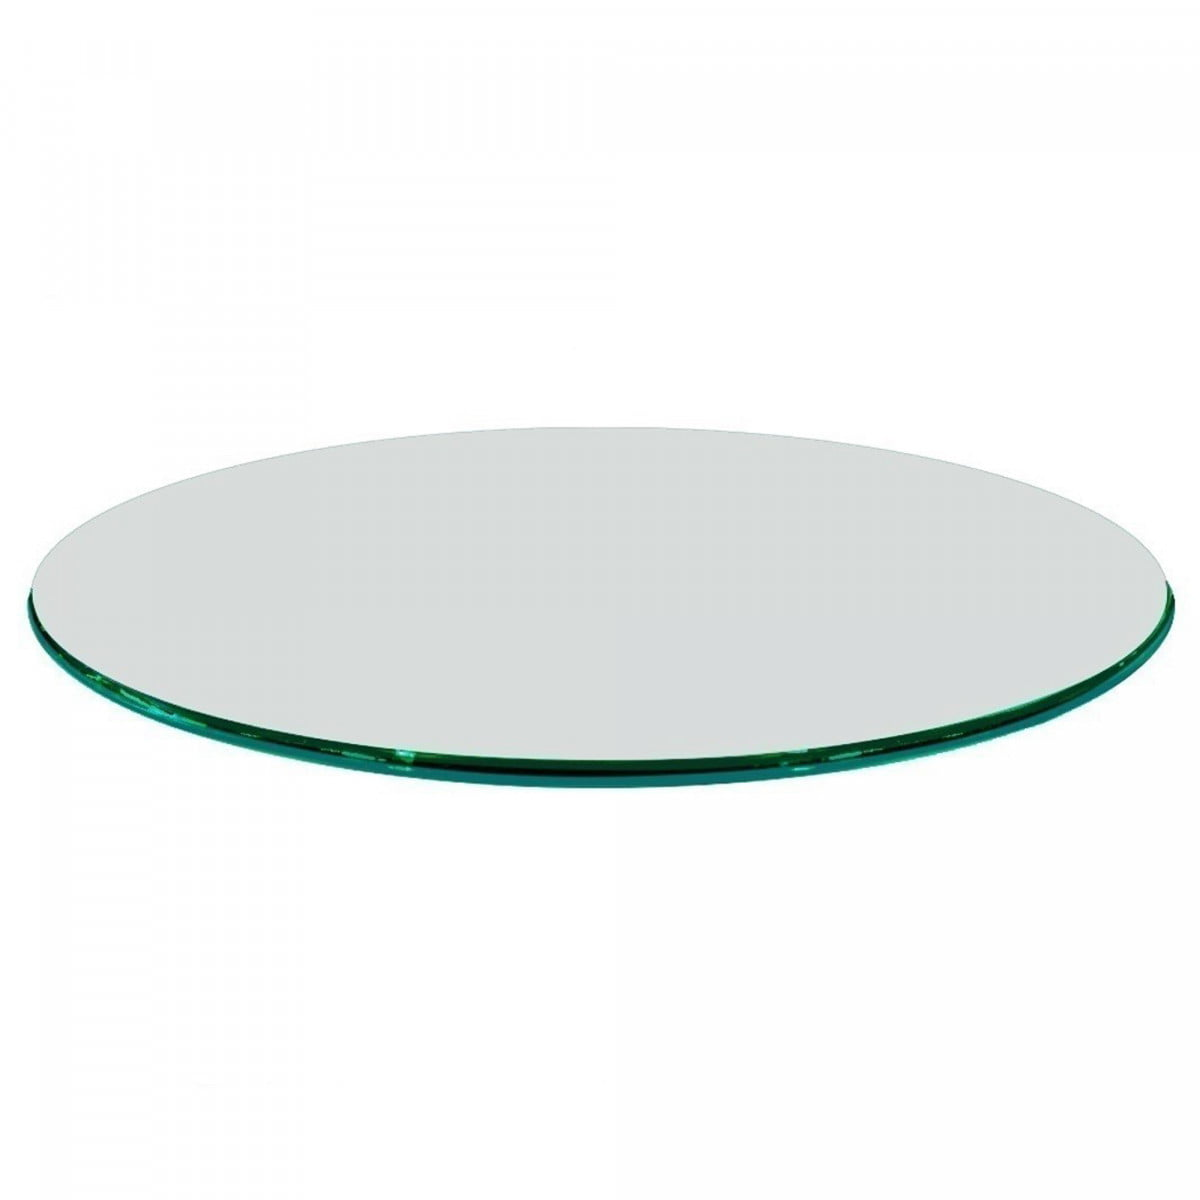 48 Inch Round Glass Table Top 3 4 Inch Thick Clear Tempered Glass With Ogee Edge Polished Walmart Com Walmart Com